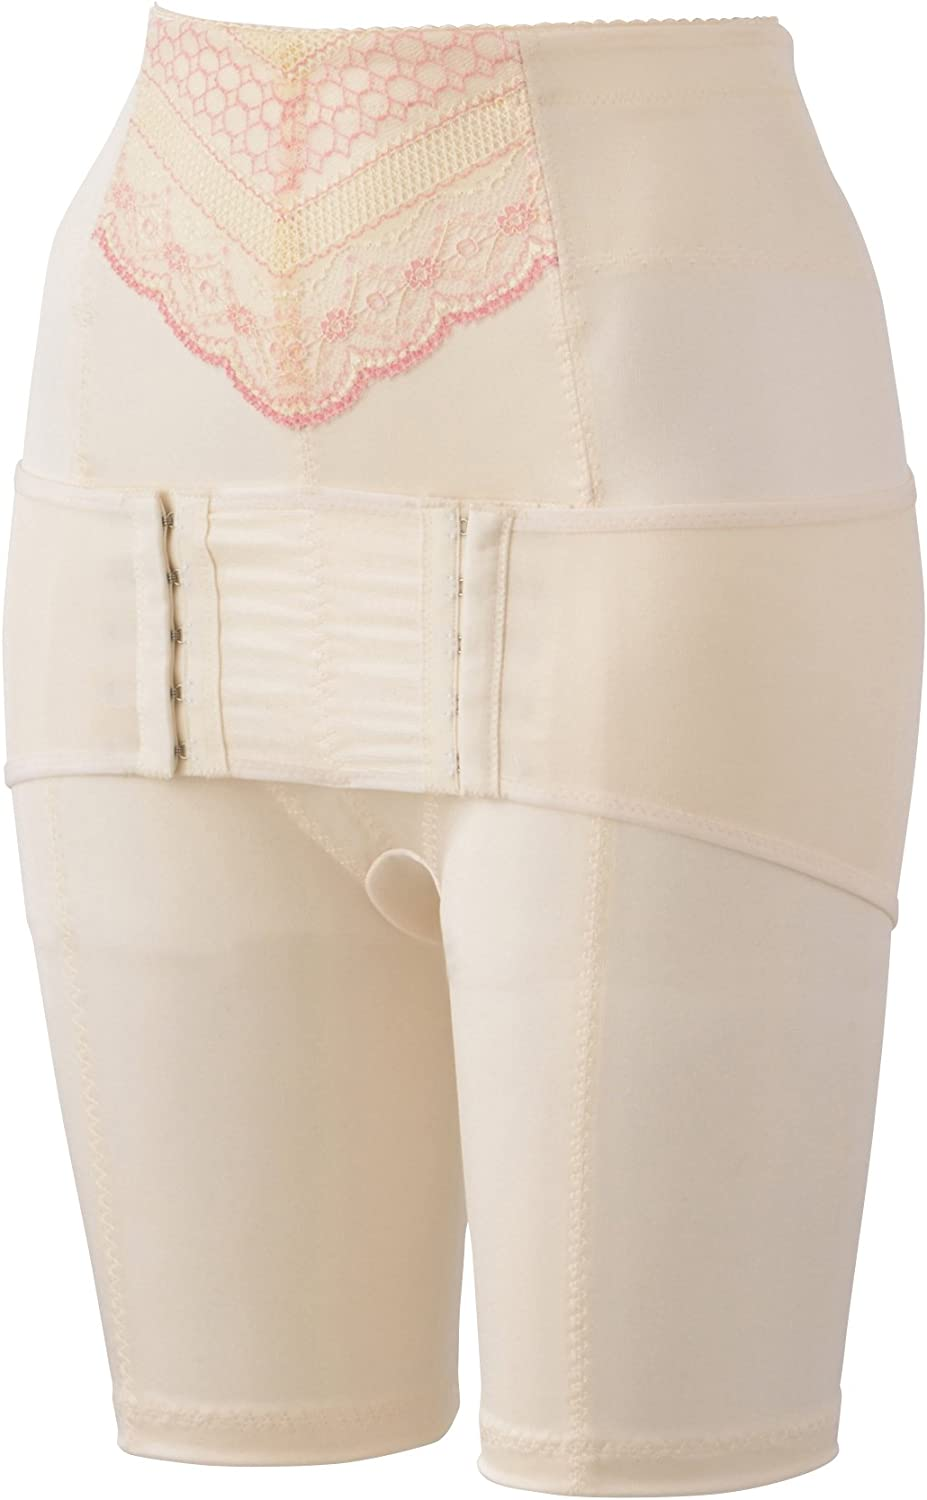 Inujirushihonpo Reform with Coral for Pelvic Belt Girdle 70cm Champagne G4200